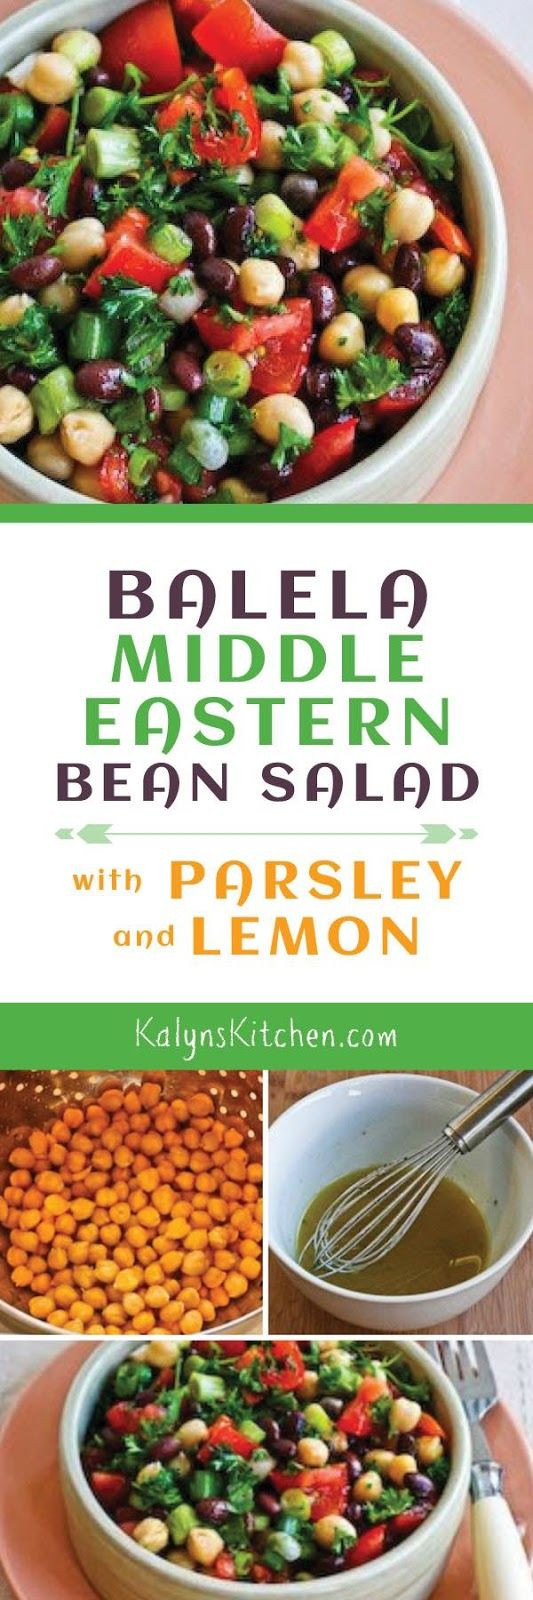 Middle Eastern Side Dishes  Balela Middle Eastern Bean Salad is delicious as a